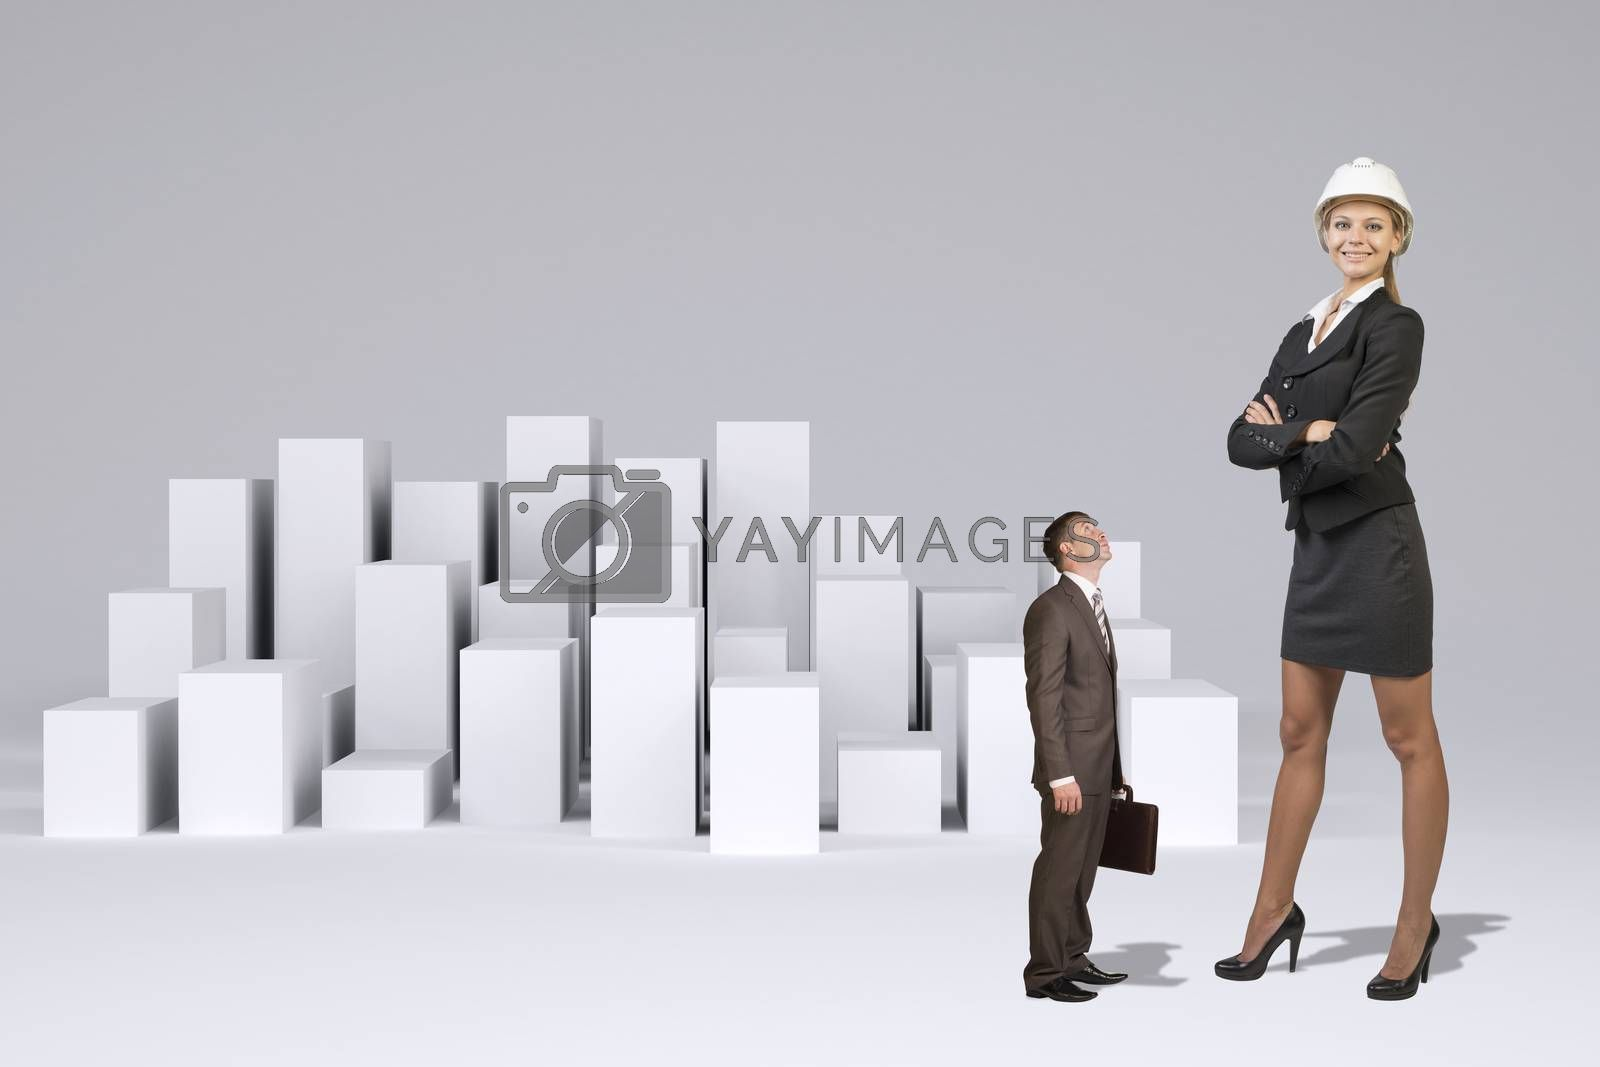 Small businessman in suit with briefcase looking at large businesswoman in suit and helmet. Many white cubes as backdrop